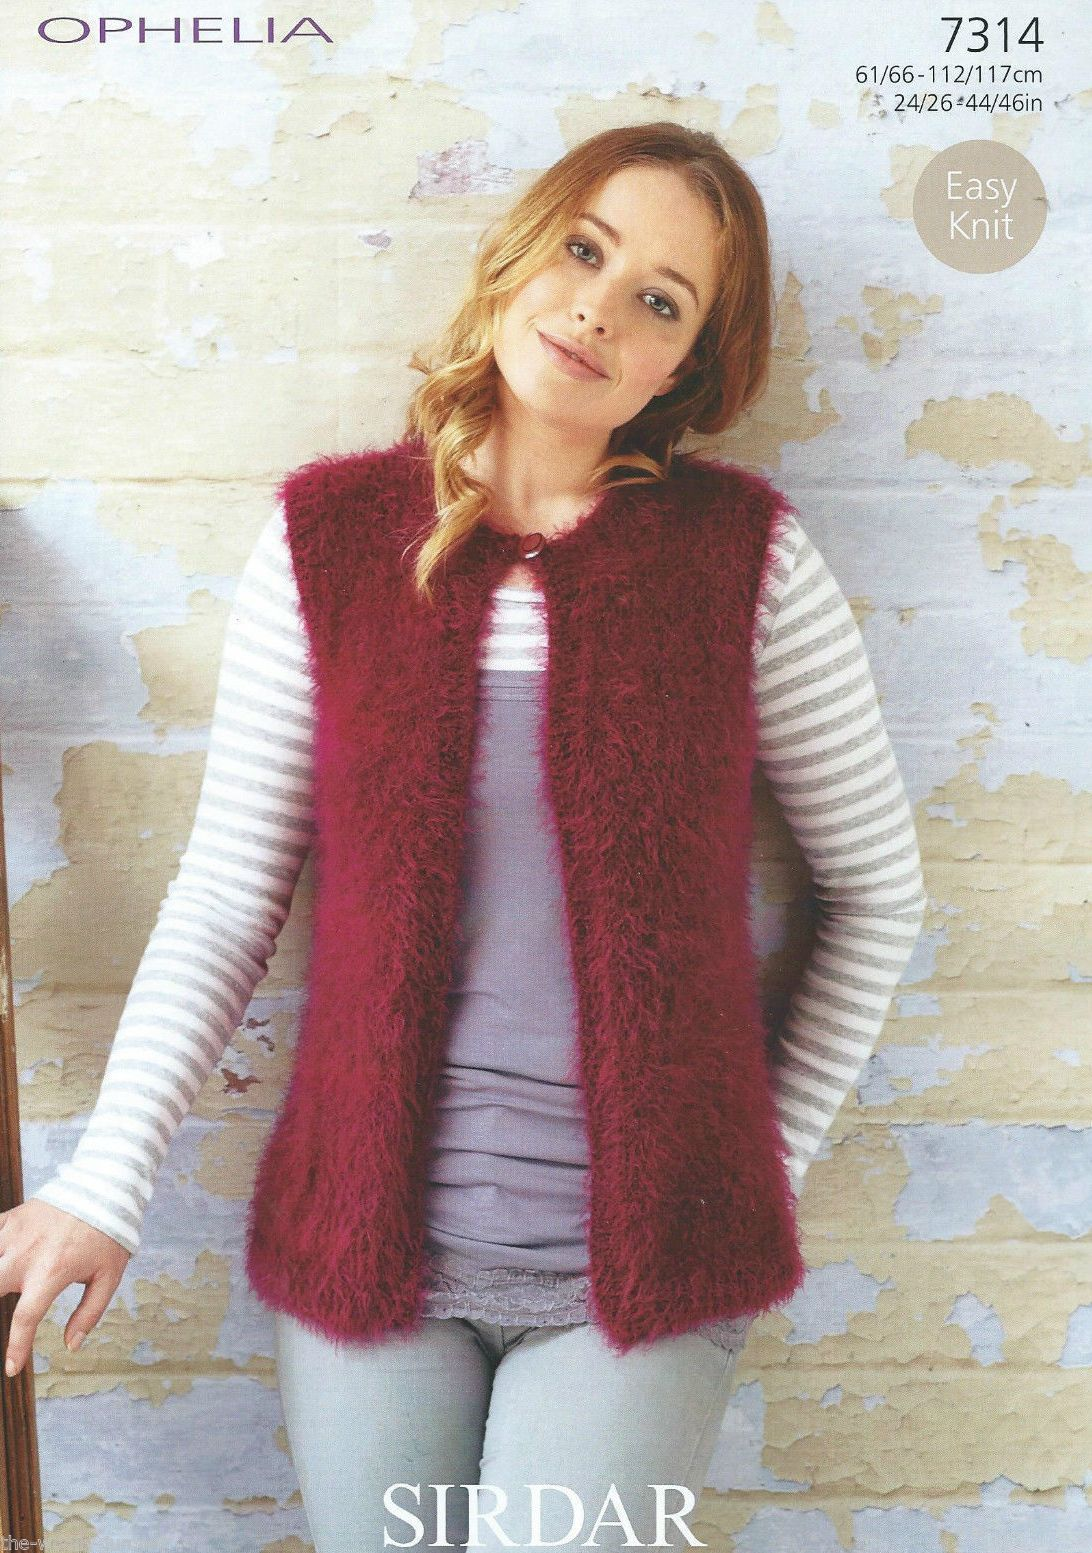 Easy Gilet Knitting Pattern : 7314 - SIRDAR OPHELIA CHUNKY EASY KNIT GILET KNITTING PATTERN - TO FIT 24 TO 46